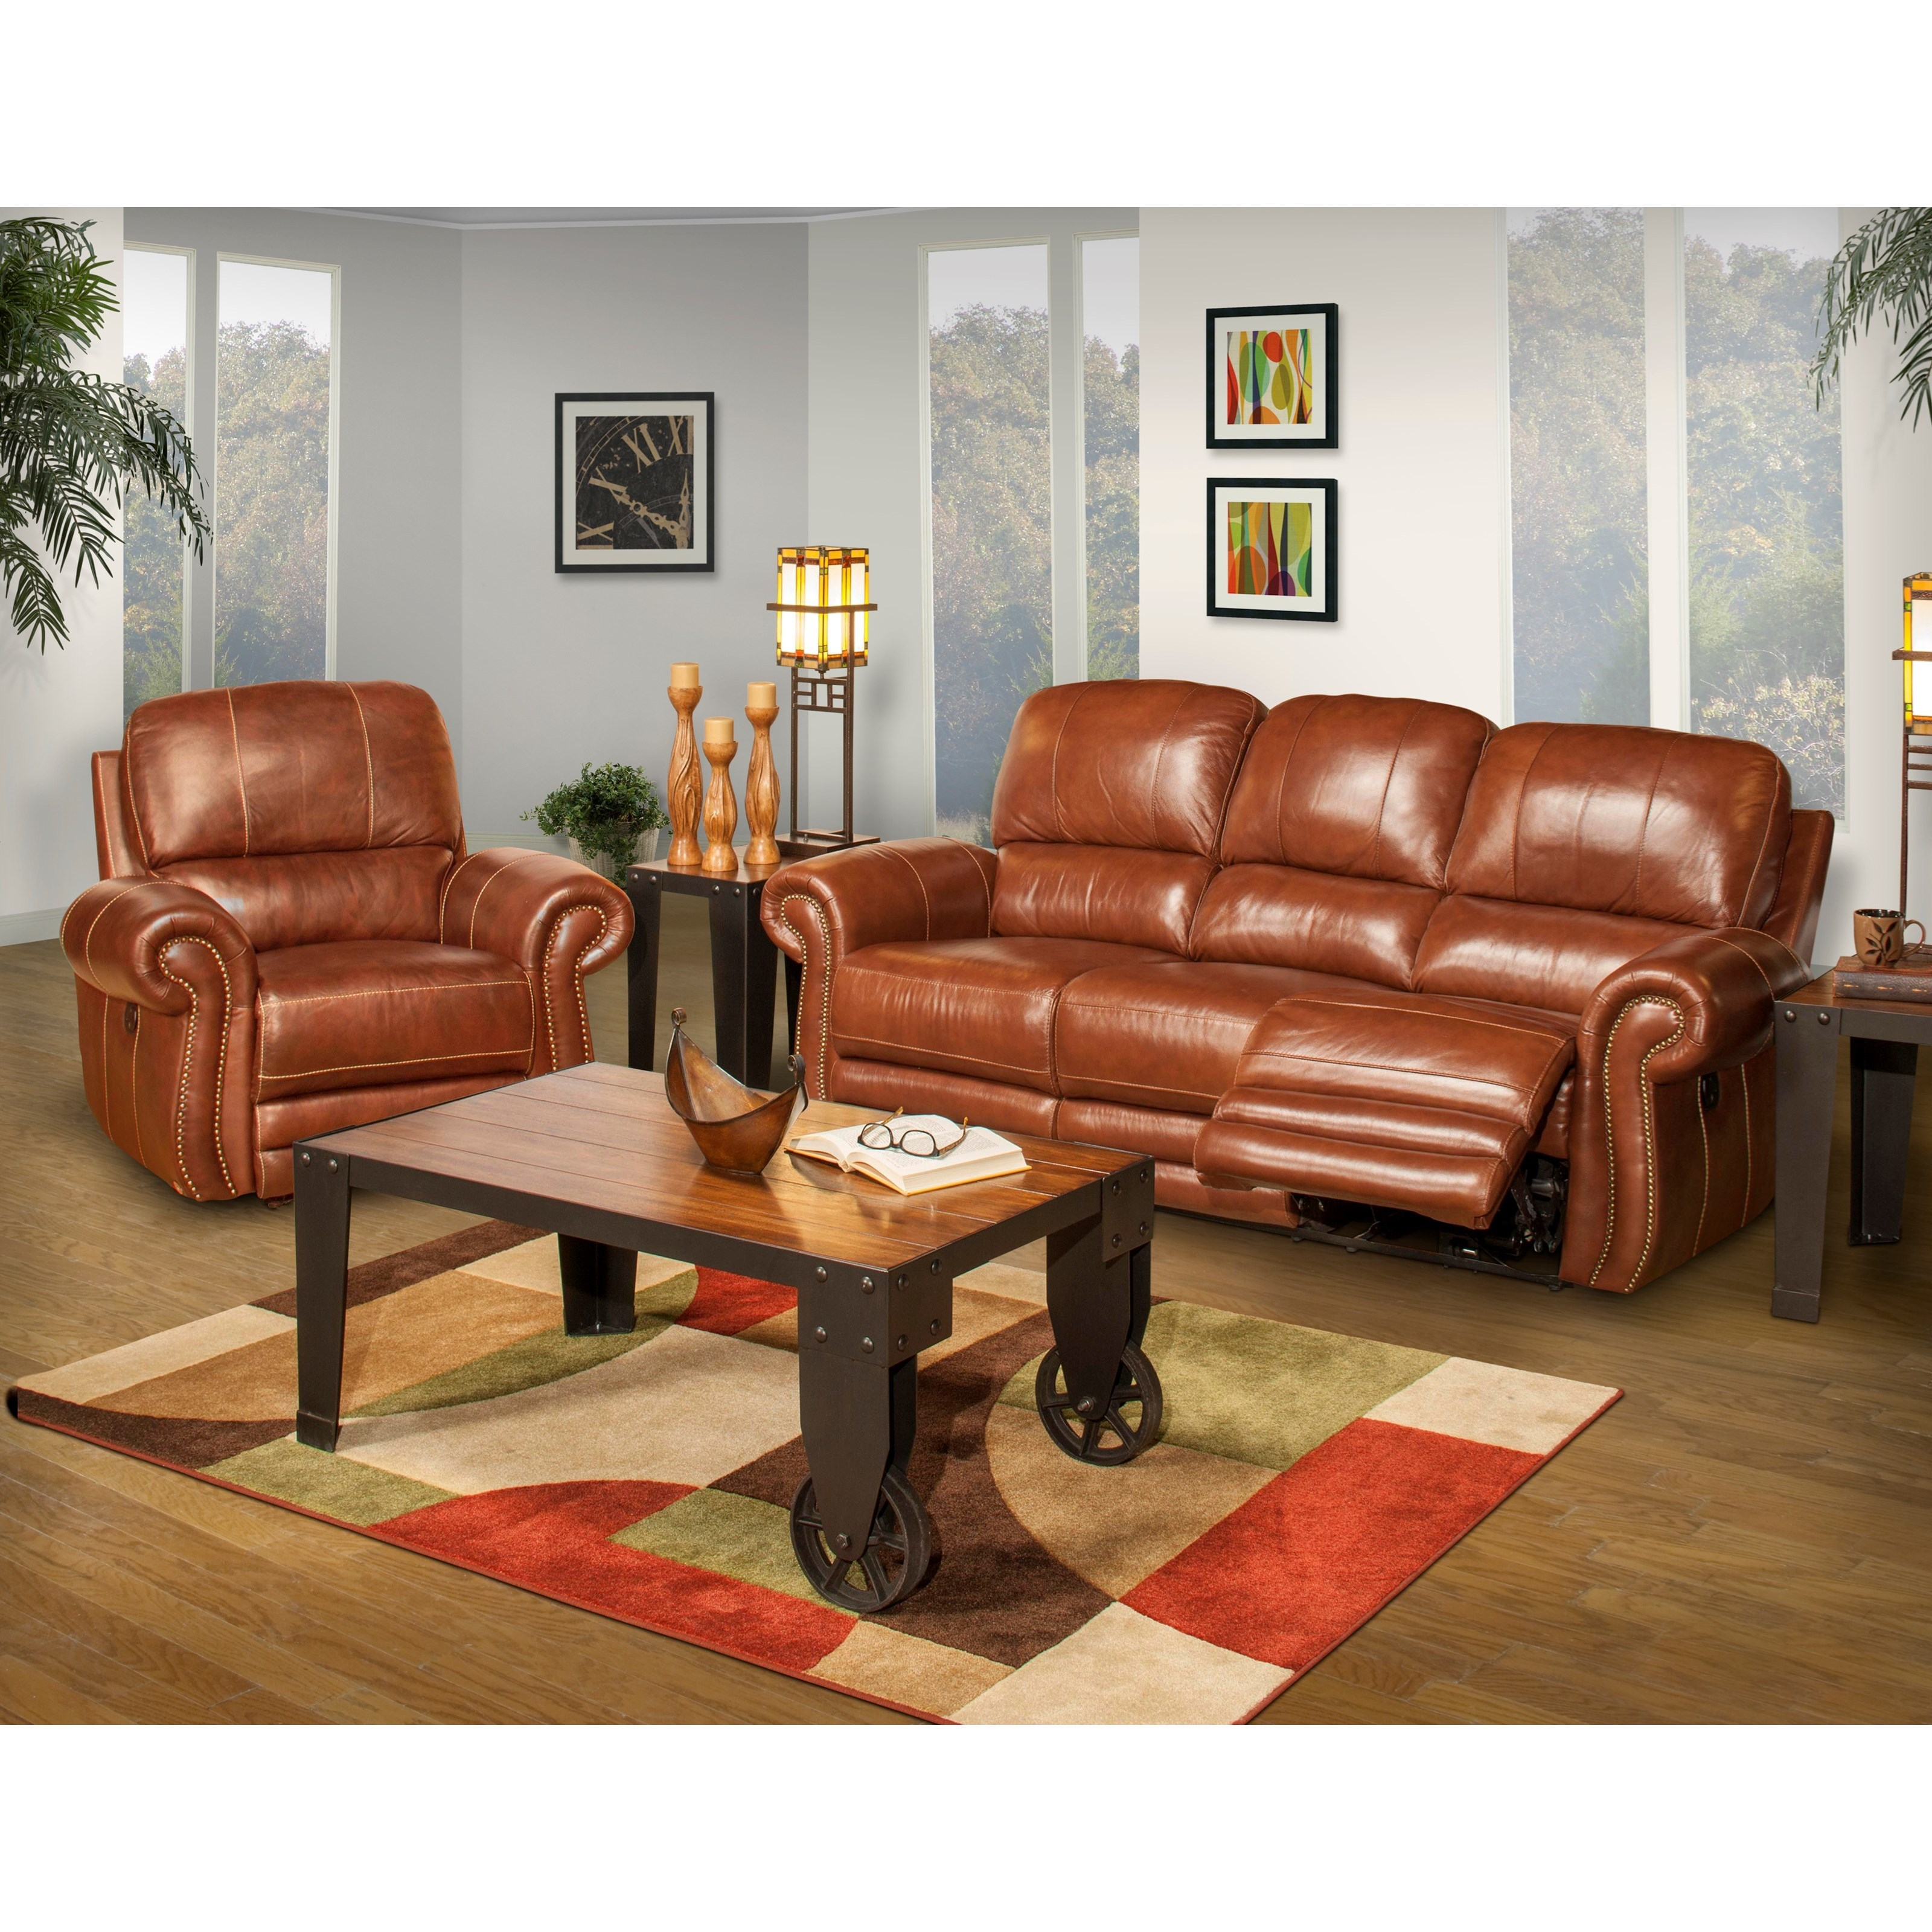 New classic rossi power reclining living room group for Living room furniture groups